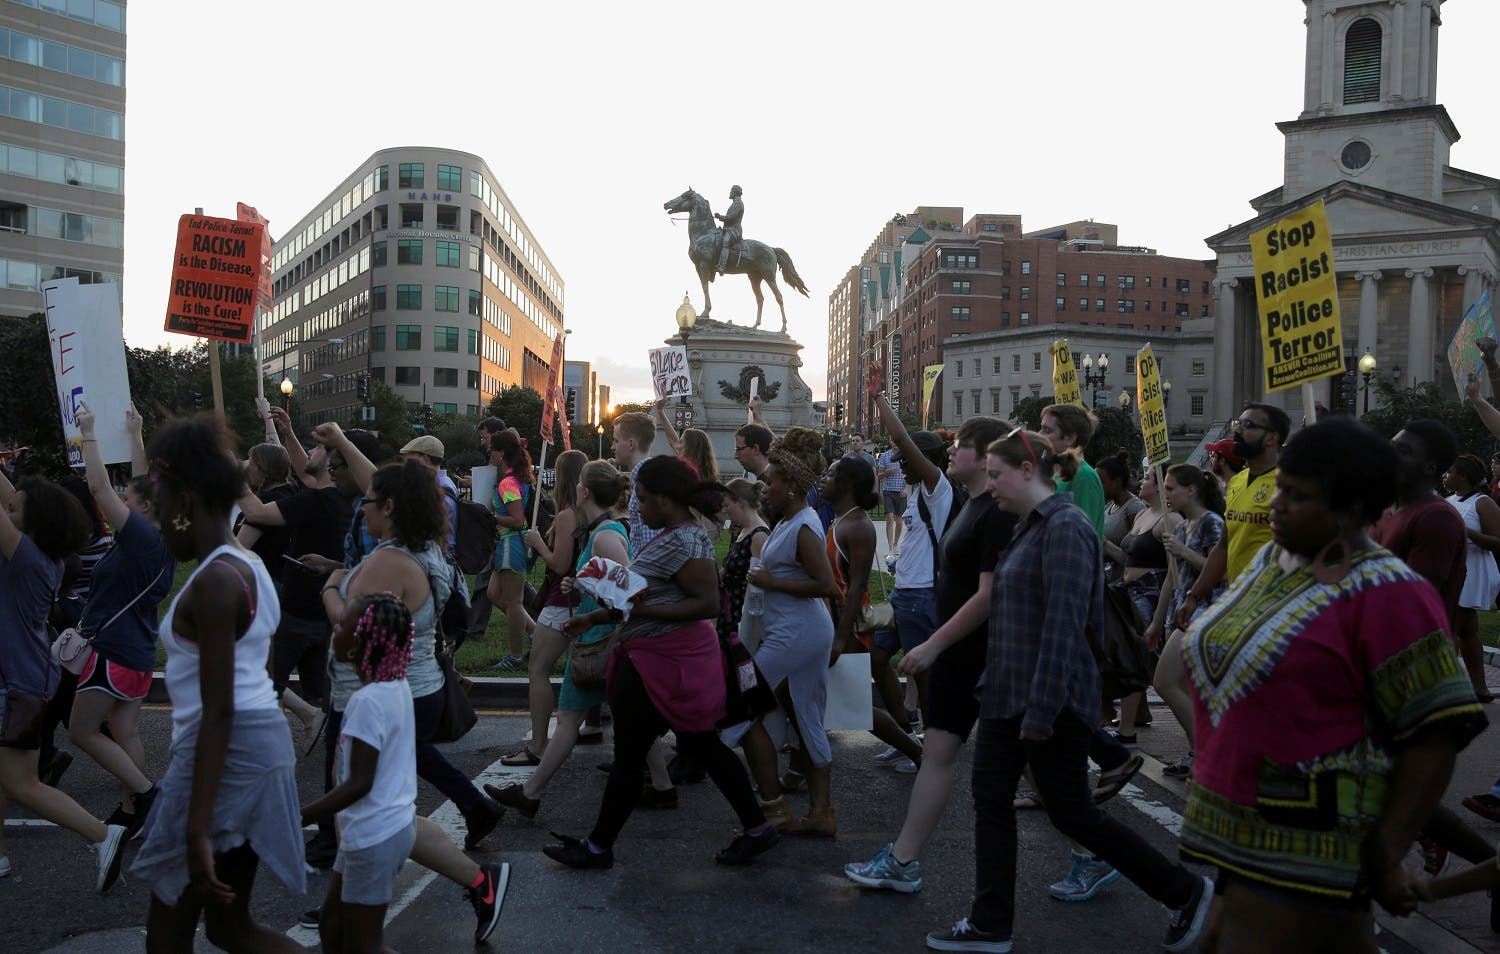 Demonstrators with Black Lives Matter march during a protest in Washington, U.S., July 9, 2016. REUTERS